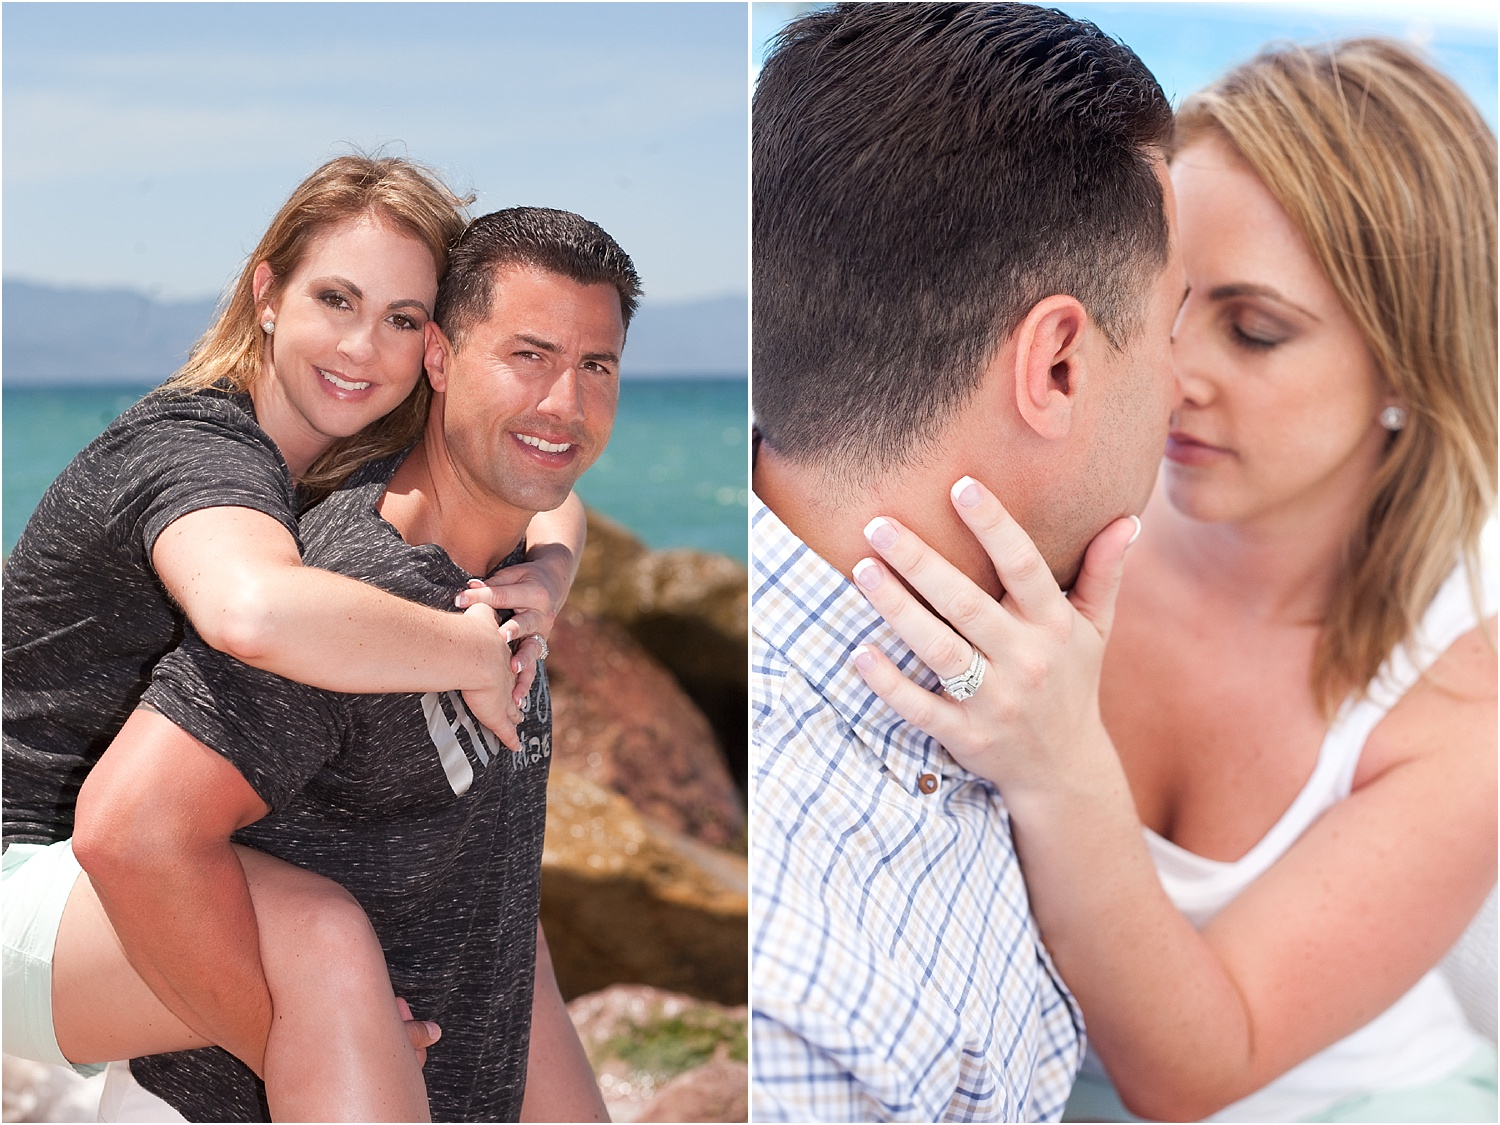 Using Flash for Beach Portraits - portrait of a couple